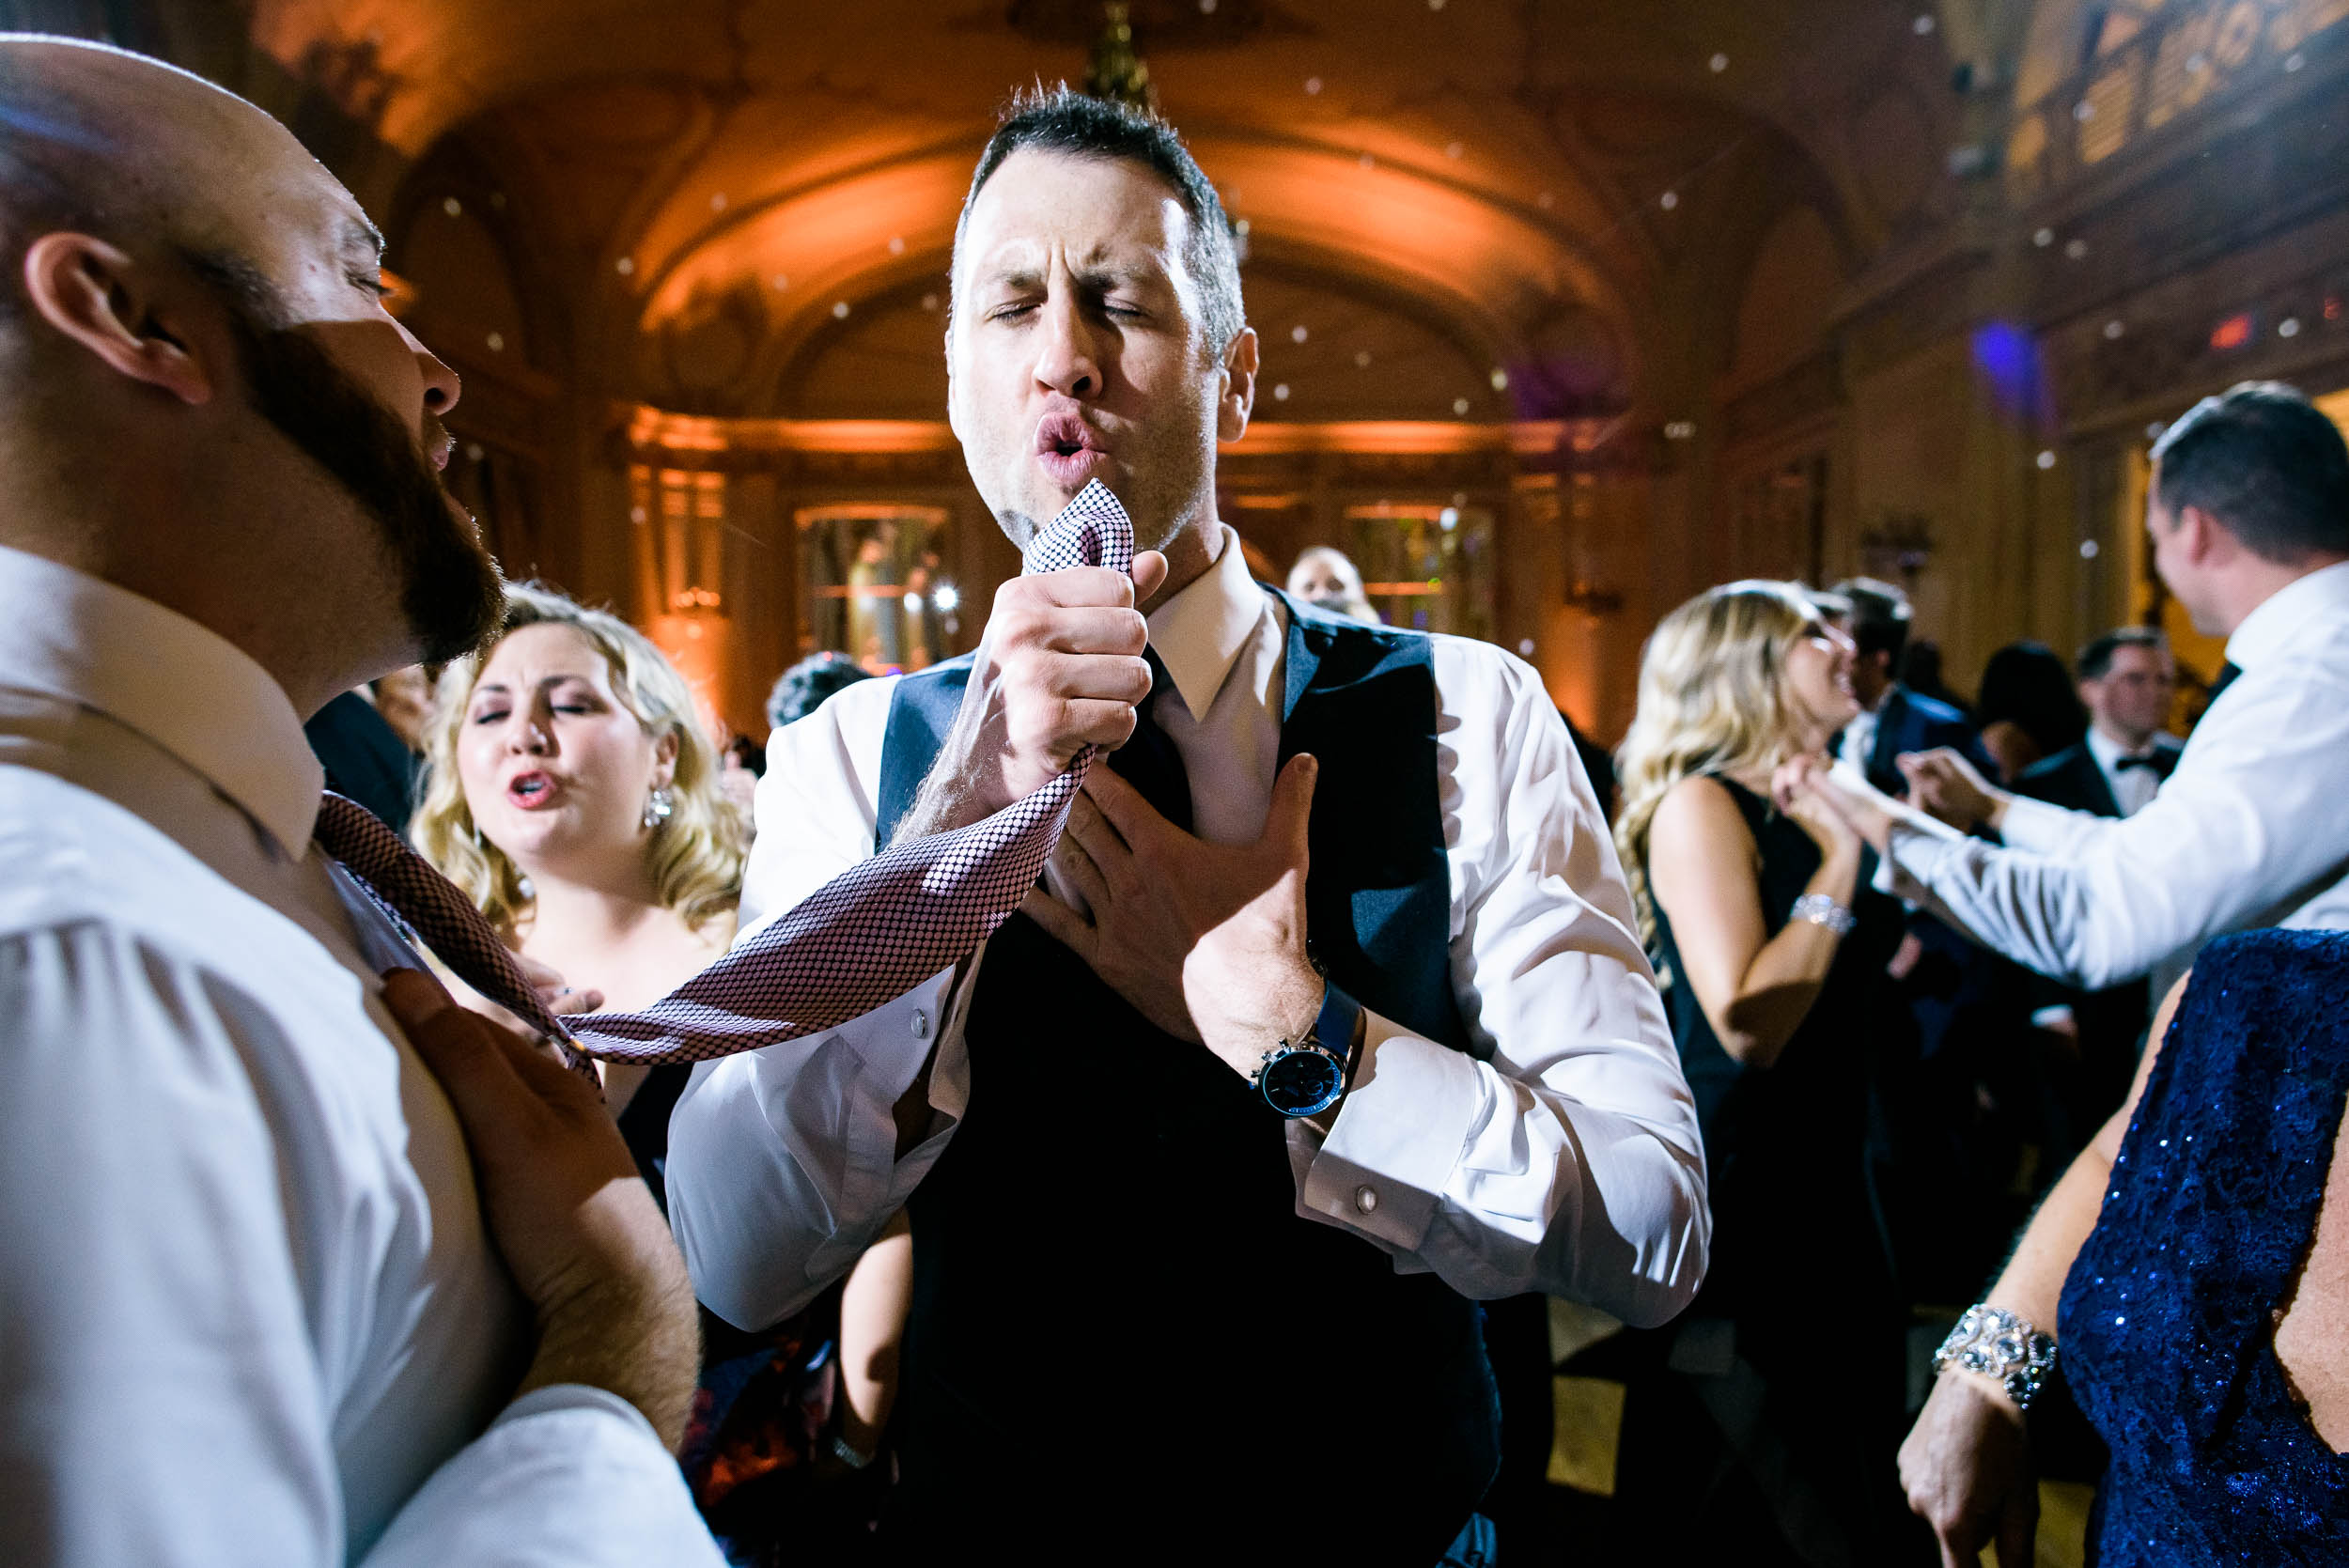 Wedding reception fun at luxurious fall wedding at the Chicago Symphony Center captured by J. Brown Photography. See more wedding ideas at jbrownphotography.com!